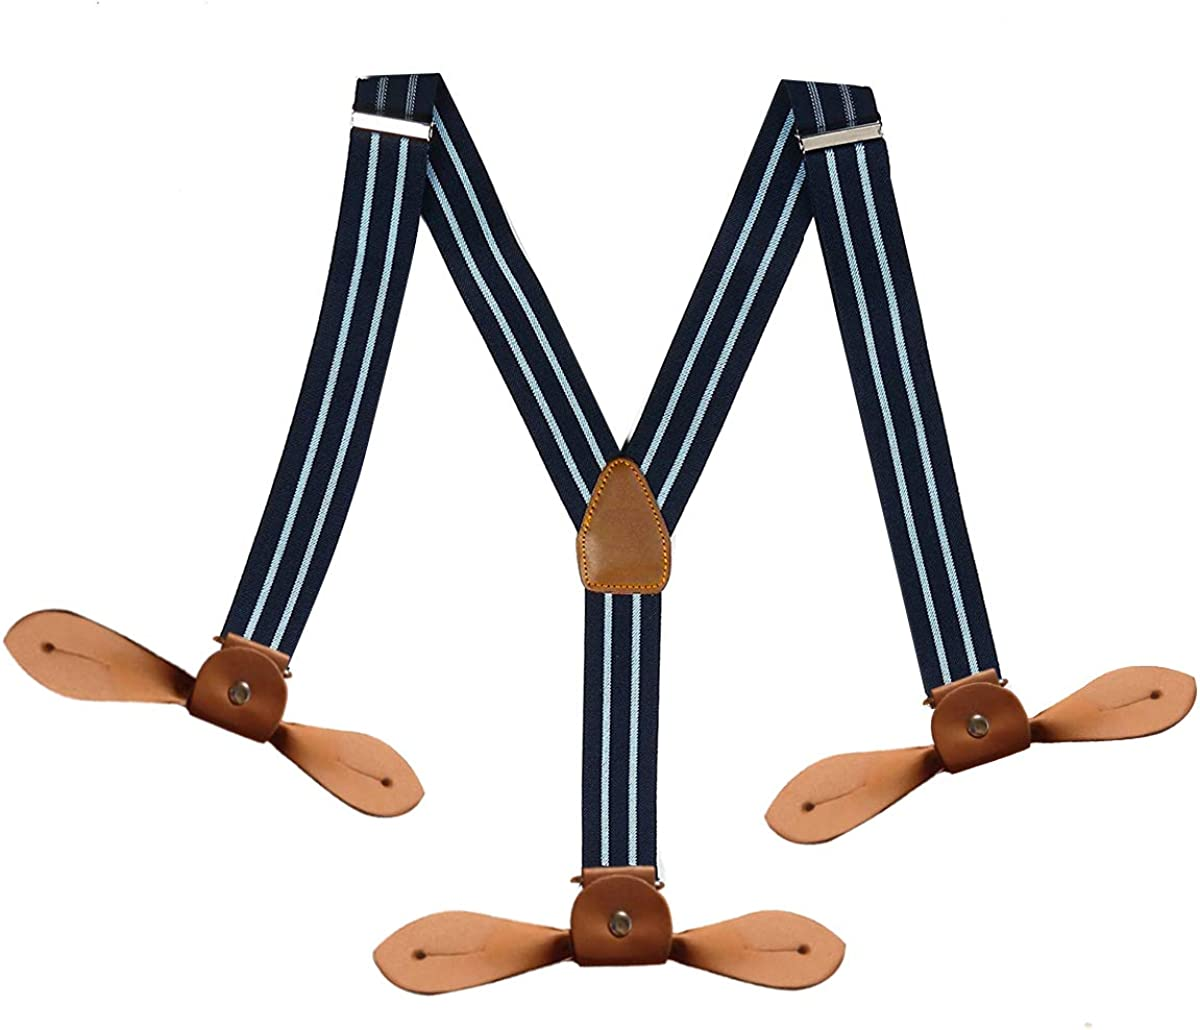 Fully Adjustable and Elasticated Fashion Accessories for men Trimming Shop Mens 25mm Braces in Navy with Heavy Duty Button hole Suspenders Stripe Dark Coffee Beige